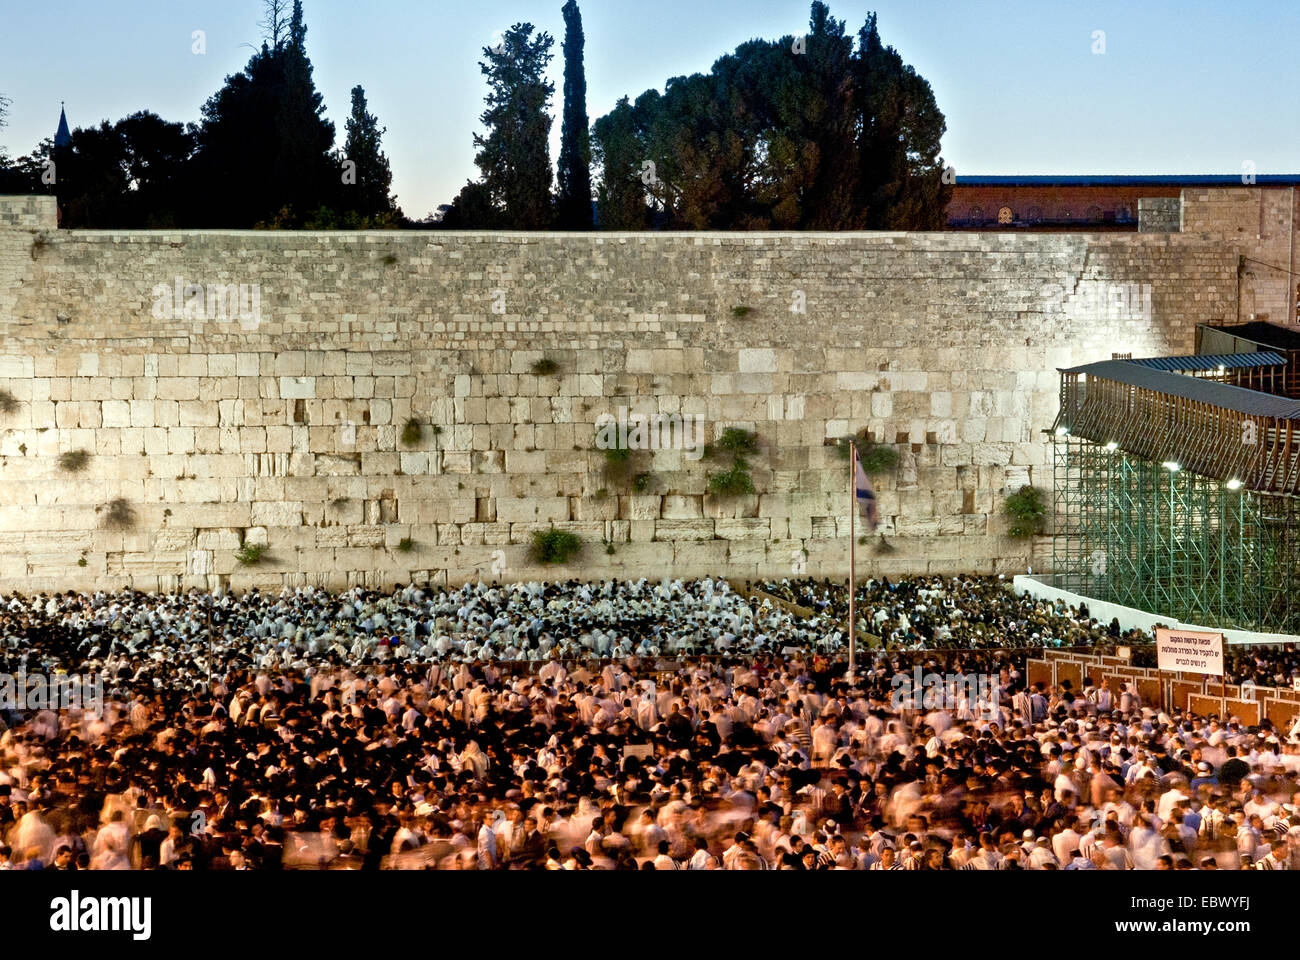 Jews Pray at the wailing wall, Old City, Jerusalem - Stock Image